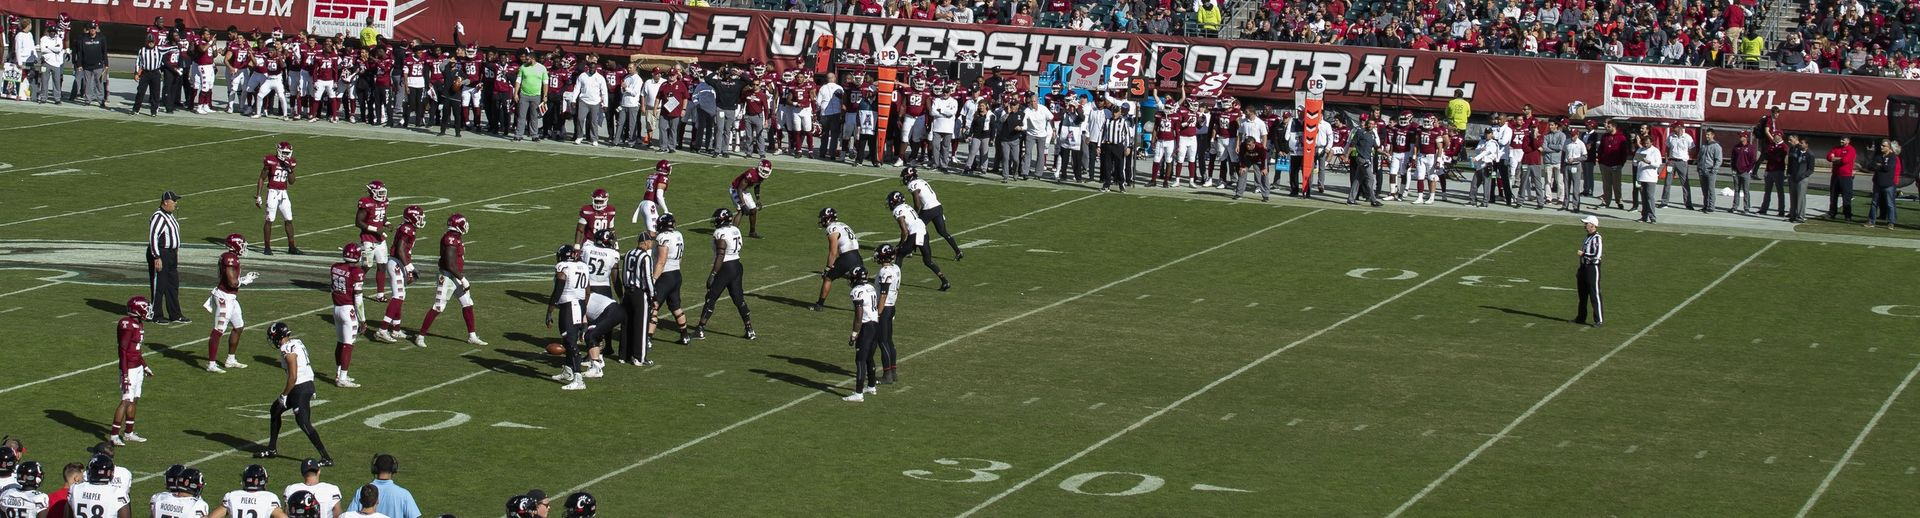 Temple University football players play a game while fans watch from the stands